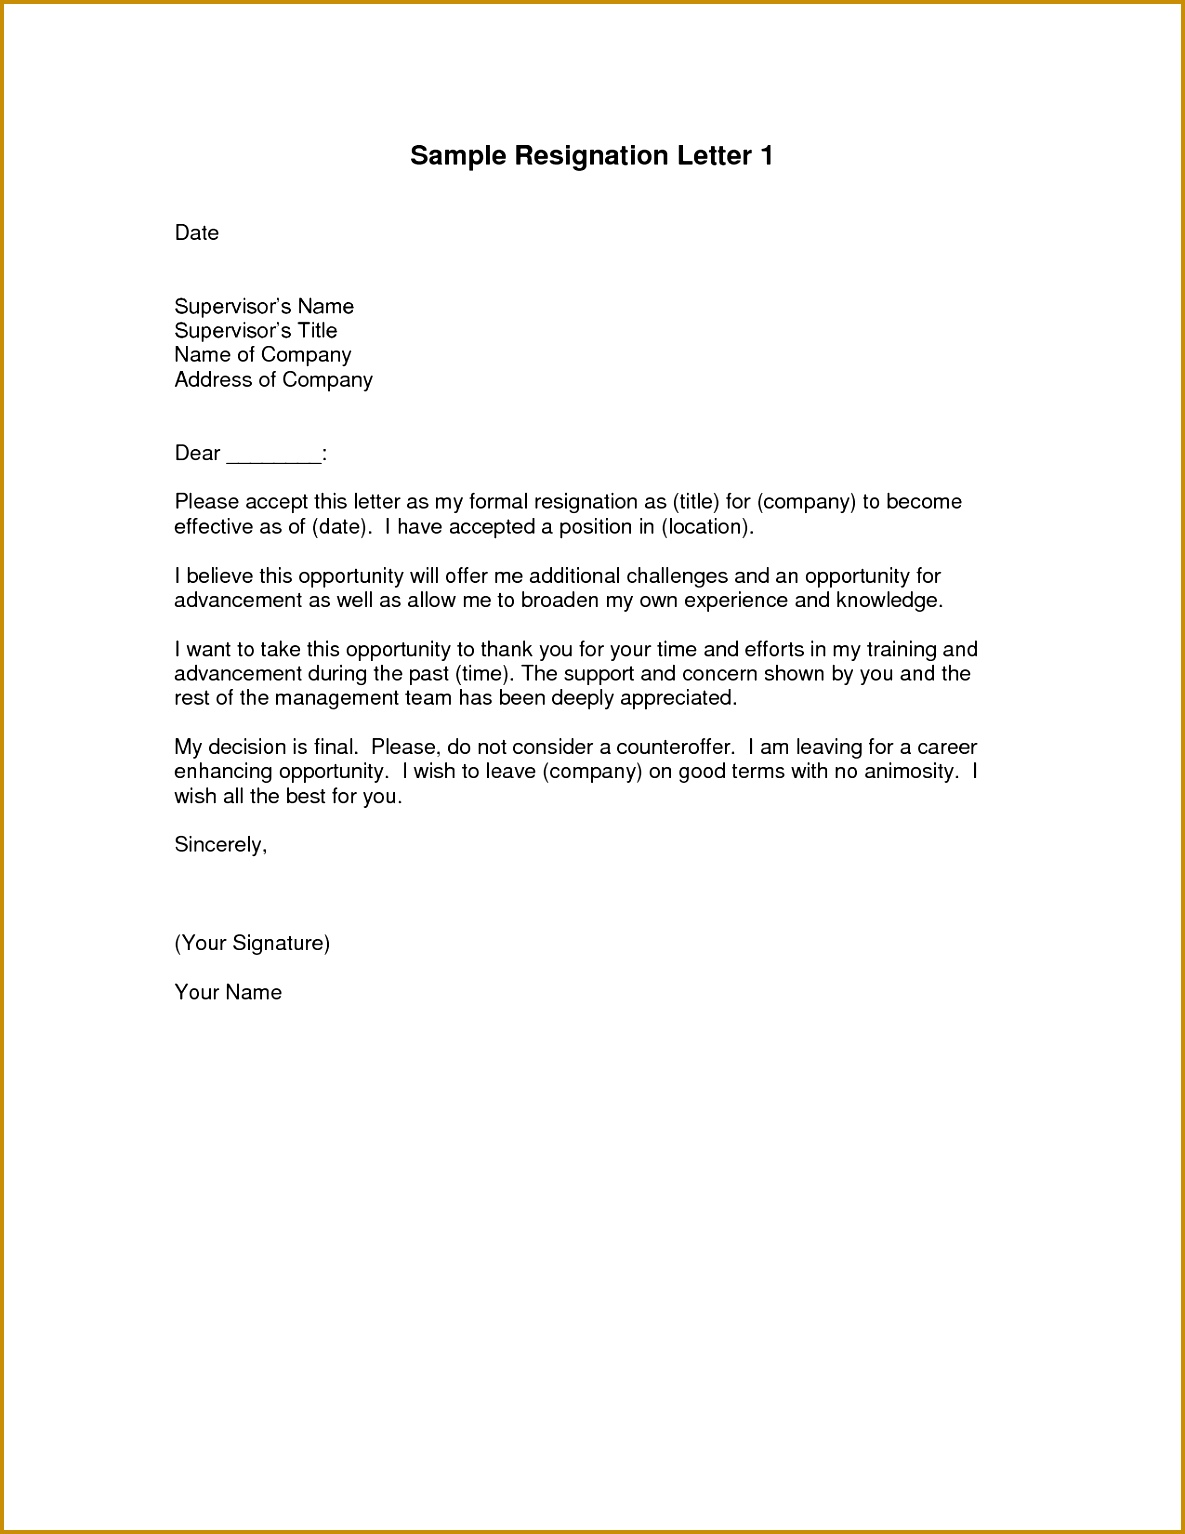 Two Week Resignation Letter Templates Elegant Two Week Resignation Letter Sample Resignation Letter format Email 15341185